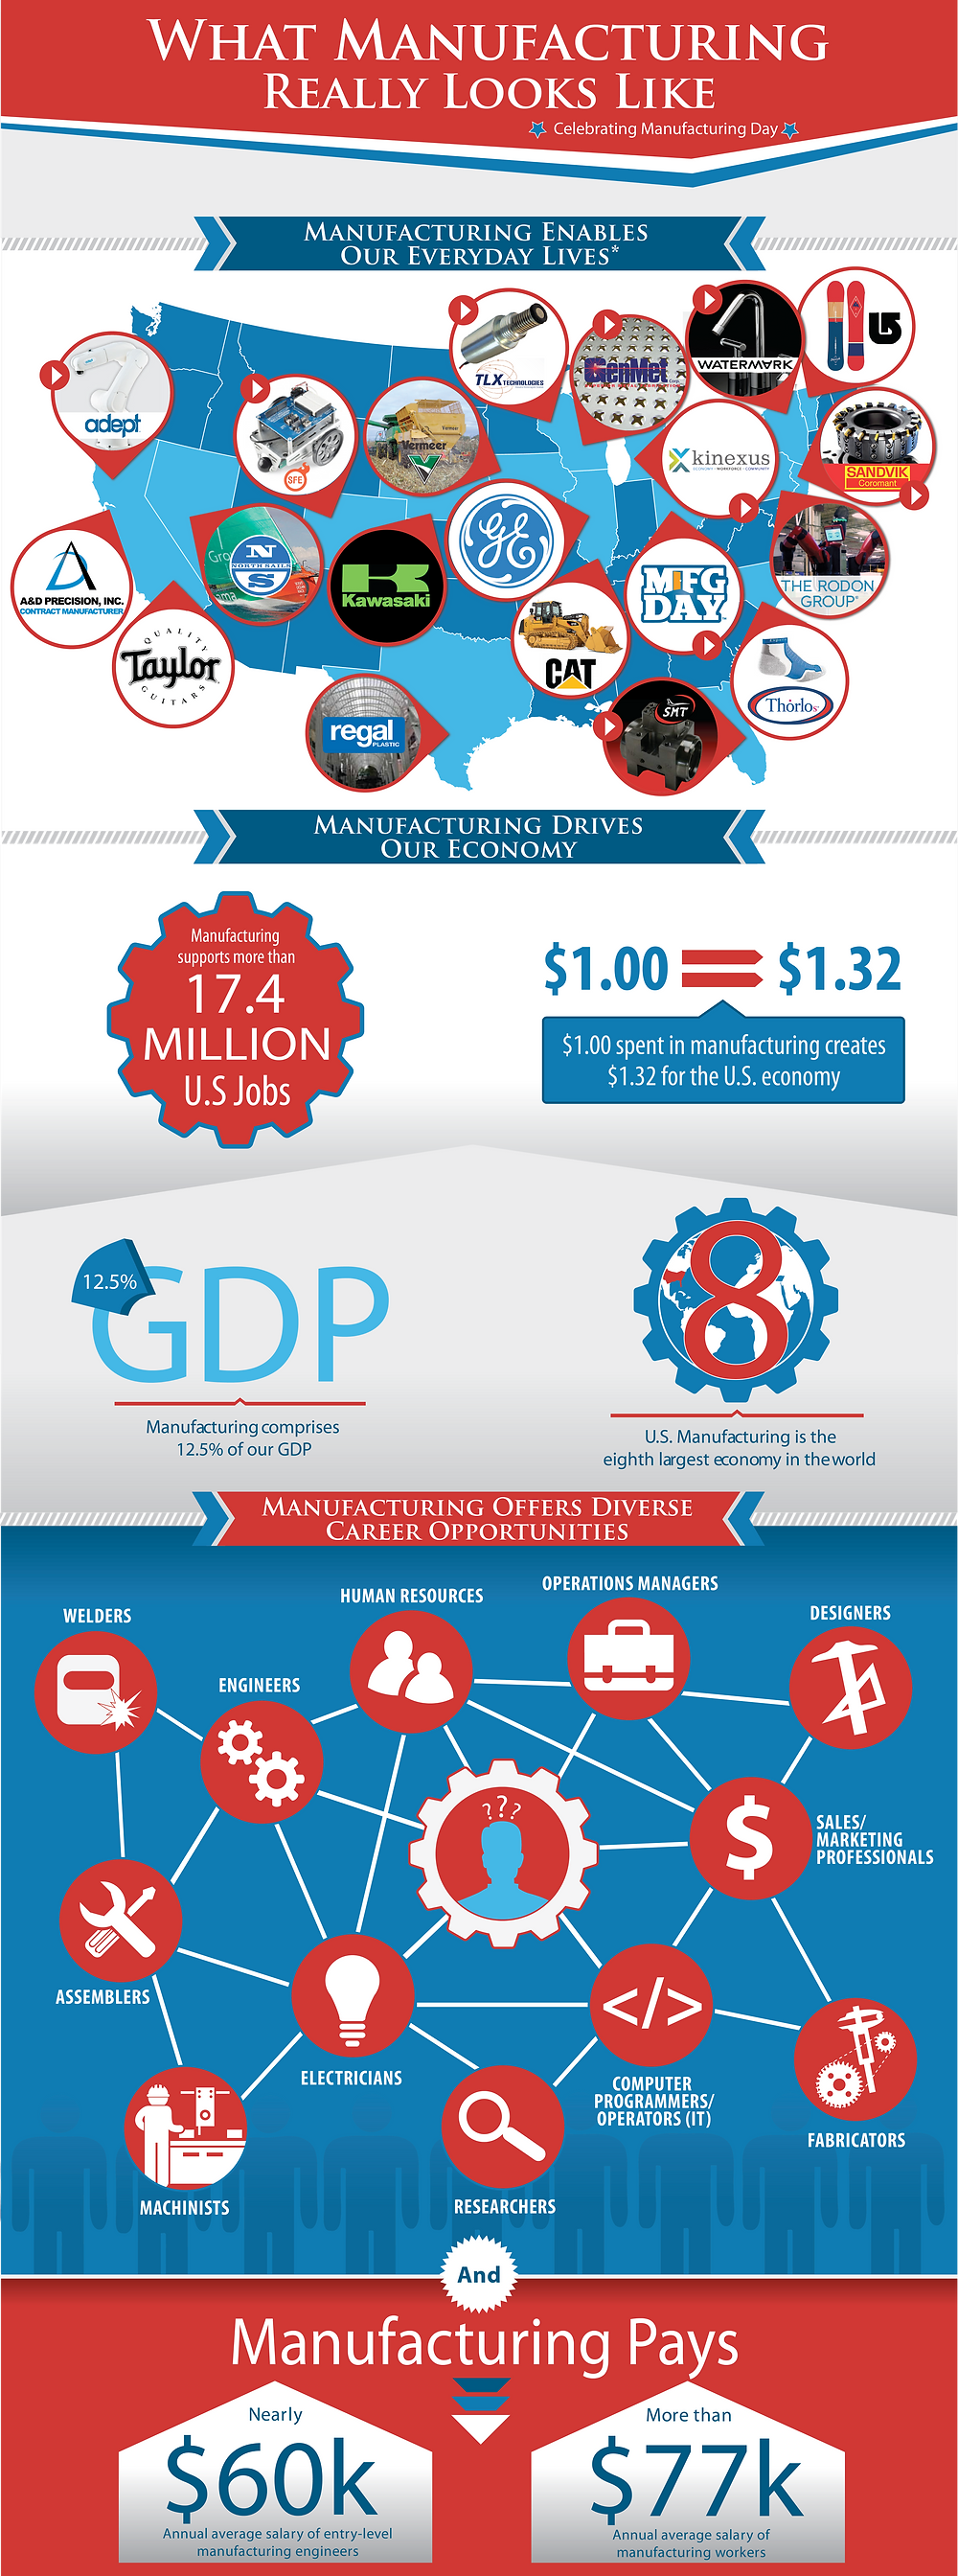 MFG DAY INFO GRAPHIC.png